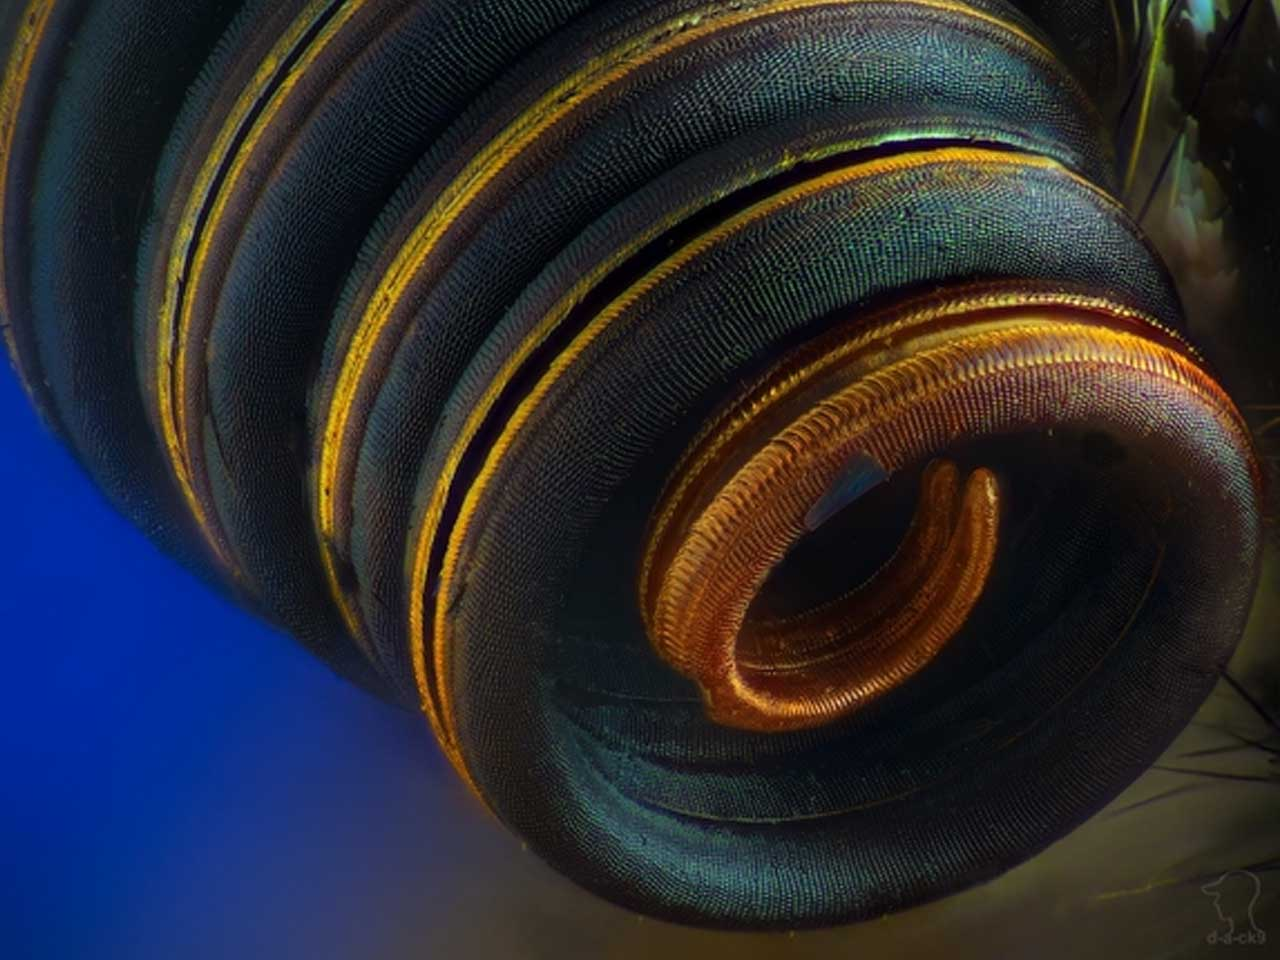 A butterfly trunk under the microscope